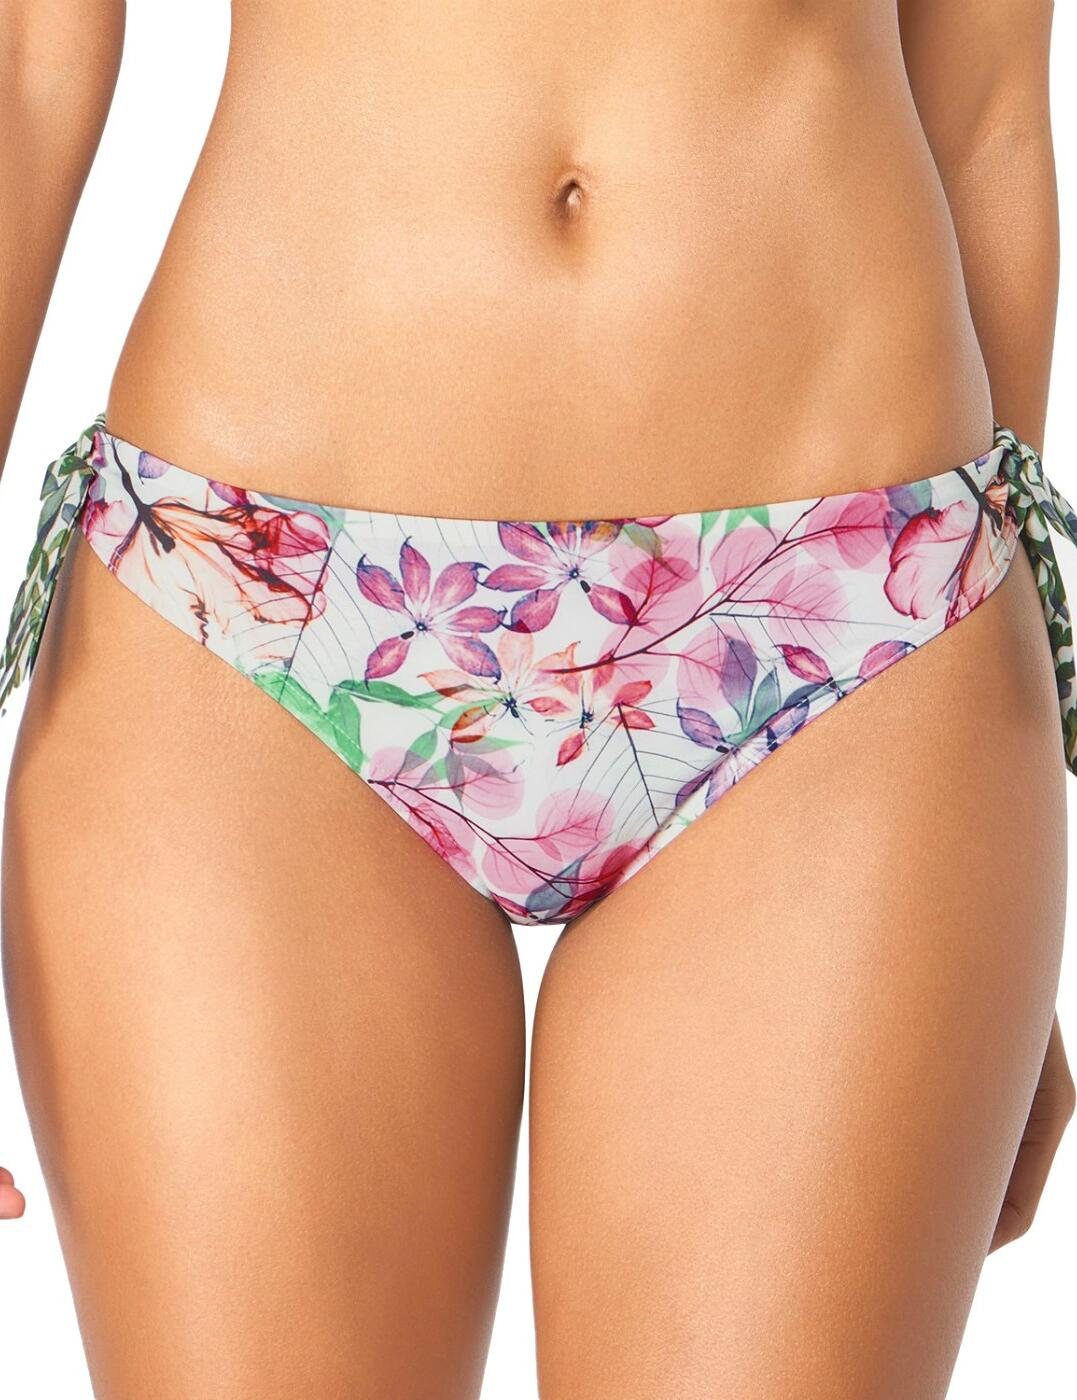 10195711 Triumph Delicate Flowers Tai Bikini Brief - 10195711 Pink/Light Combination